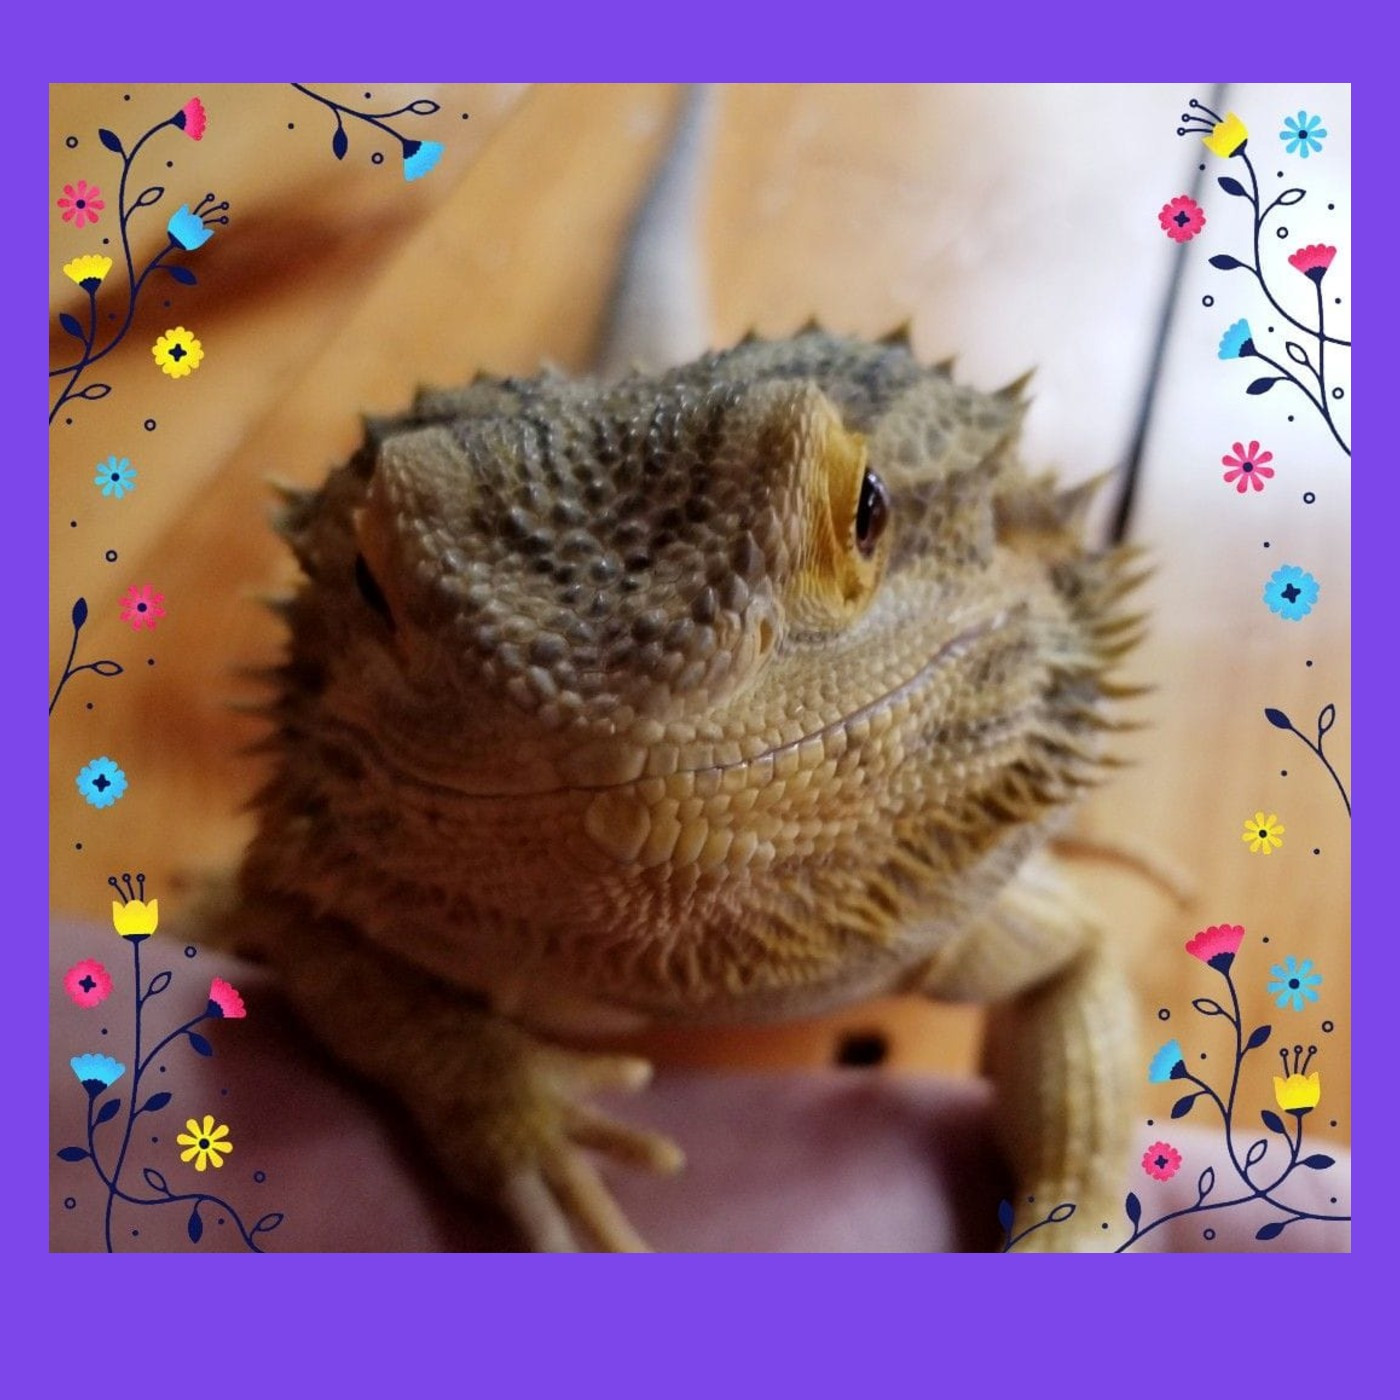 The bearded lizard